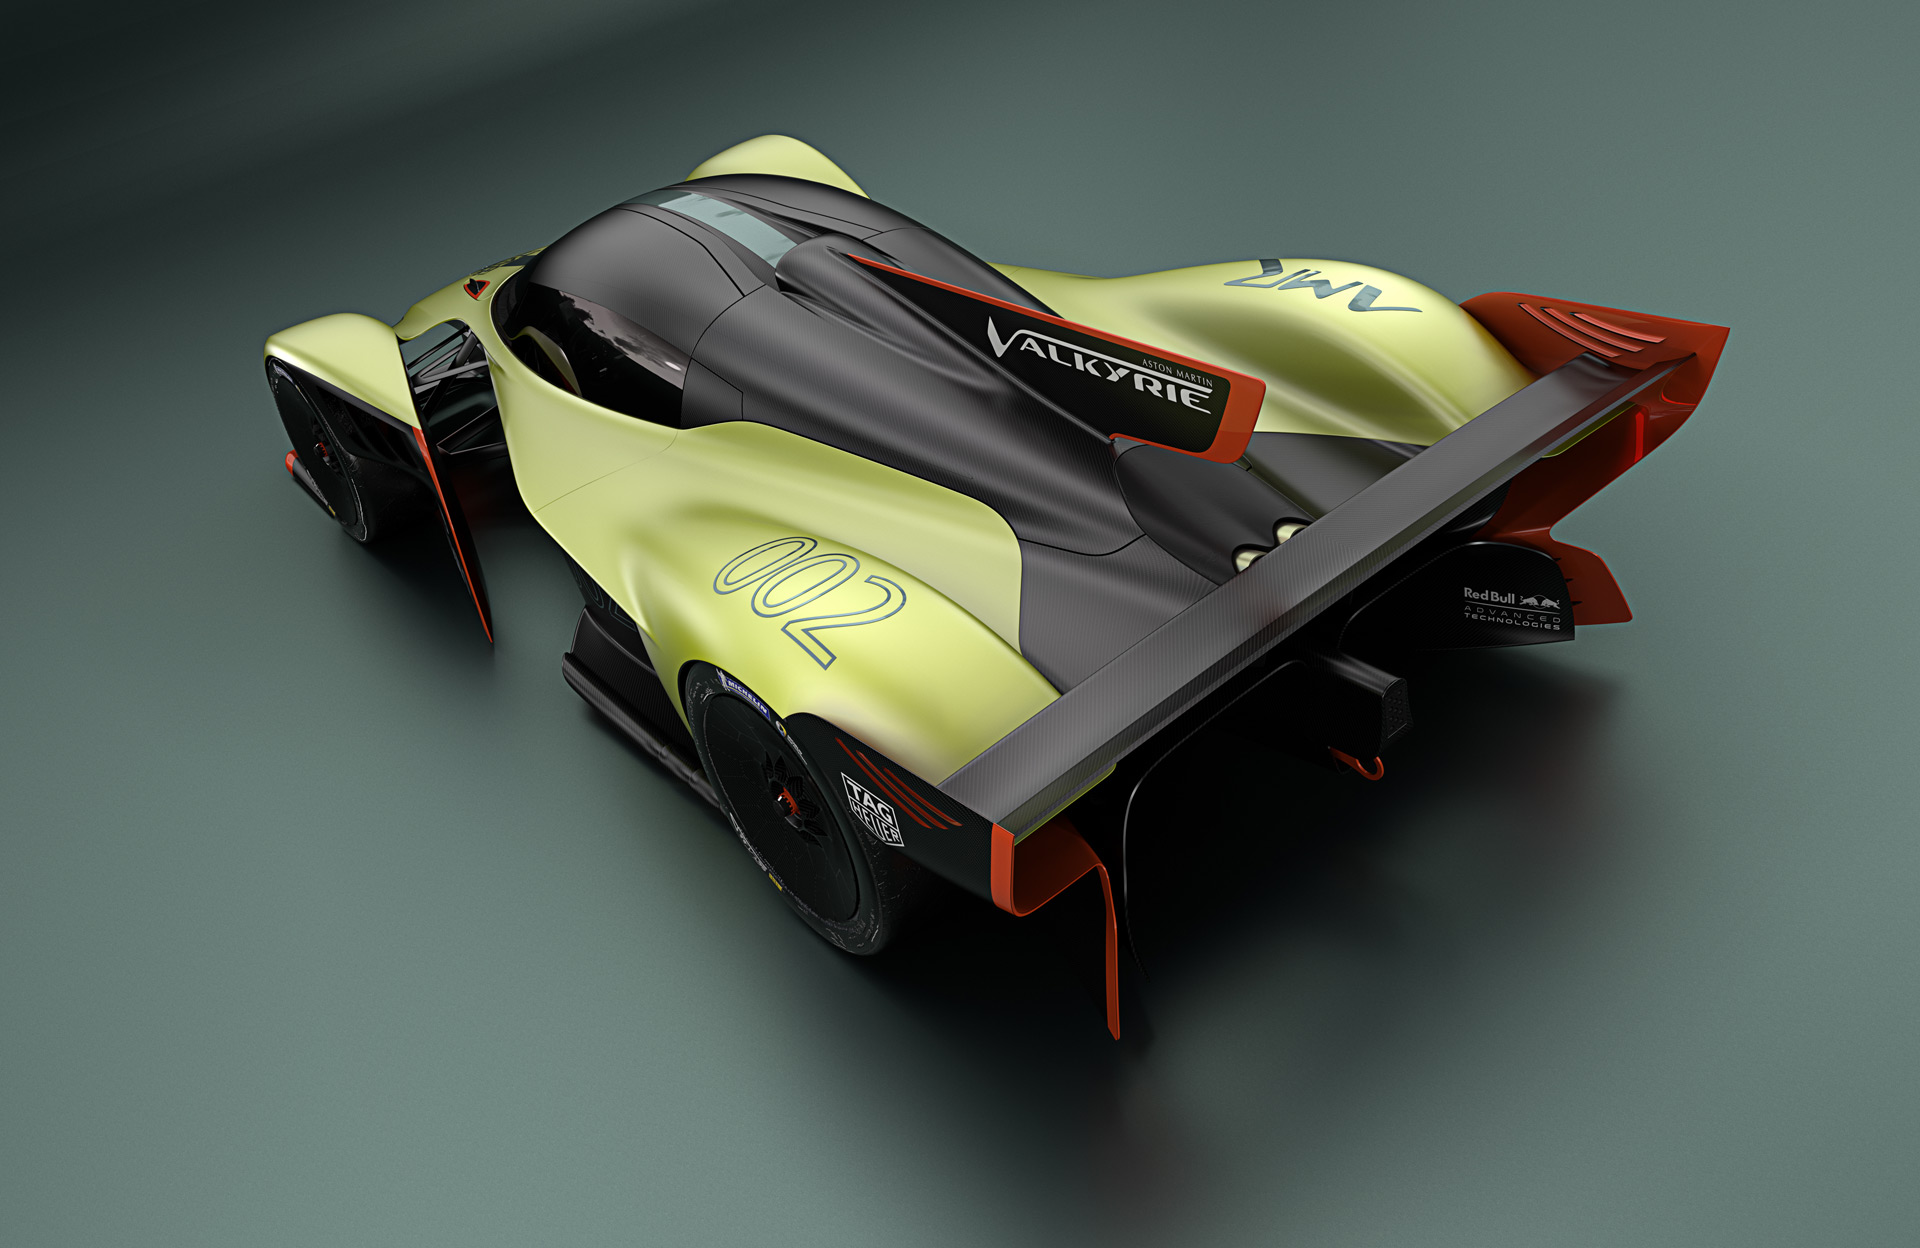 Https News 1118330 Pininfarina Reflects On Rc Car Circuit Exposed Flickr Photo Sharing Aston Martin Valkyrie Amr Pro 100645128 H